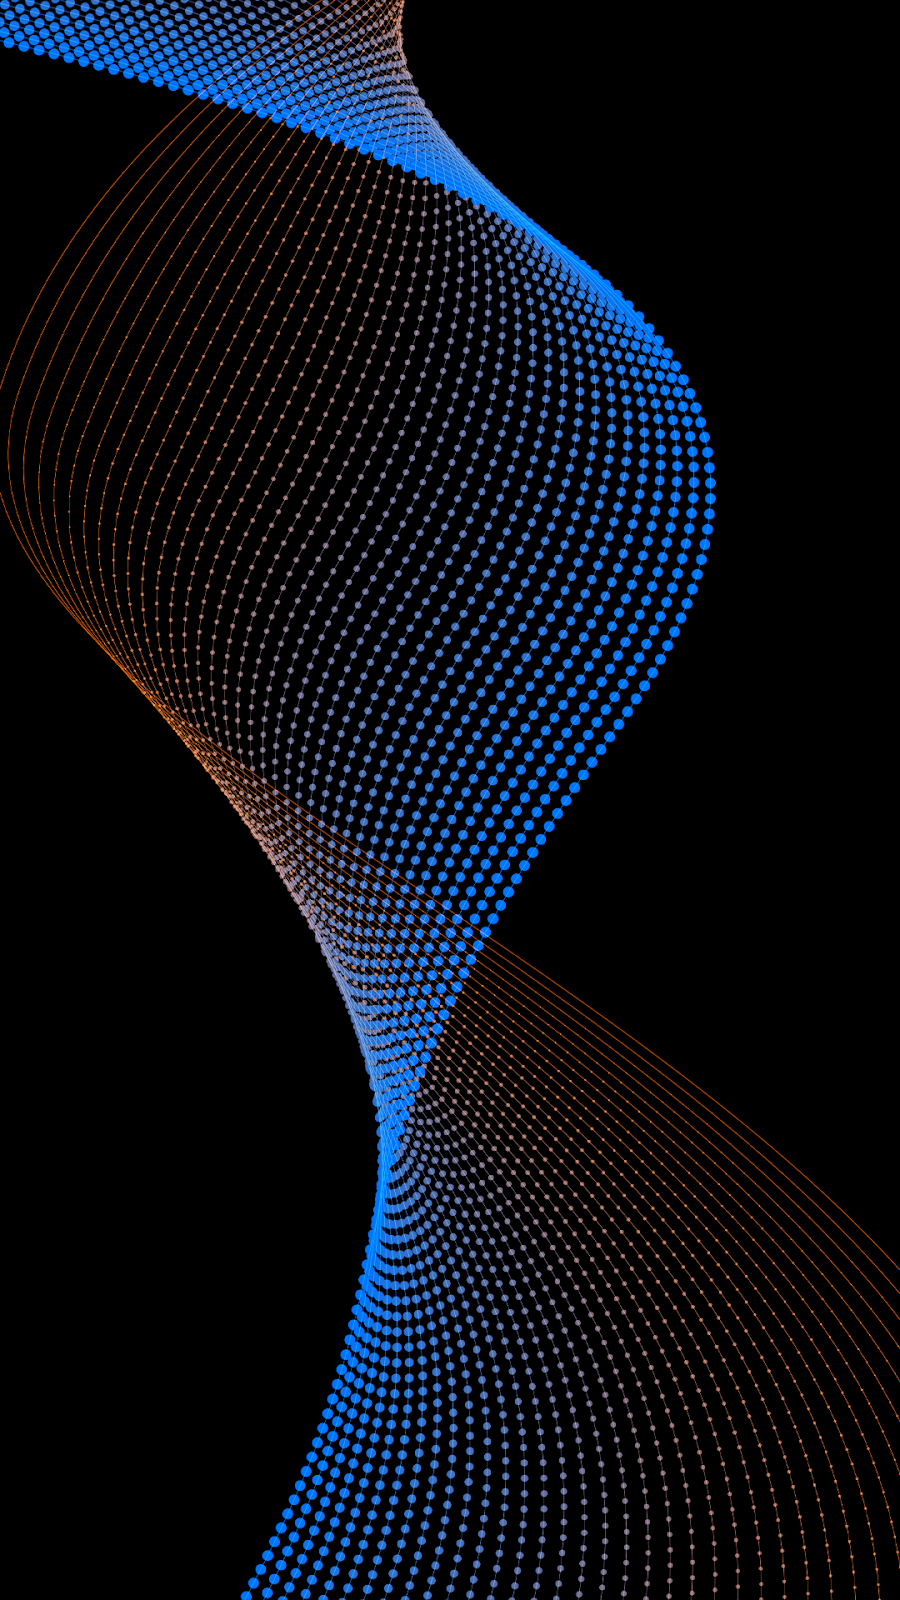 Amoled wallpaper